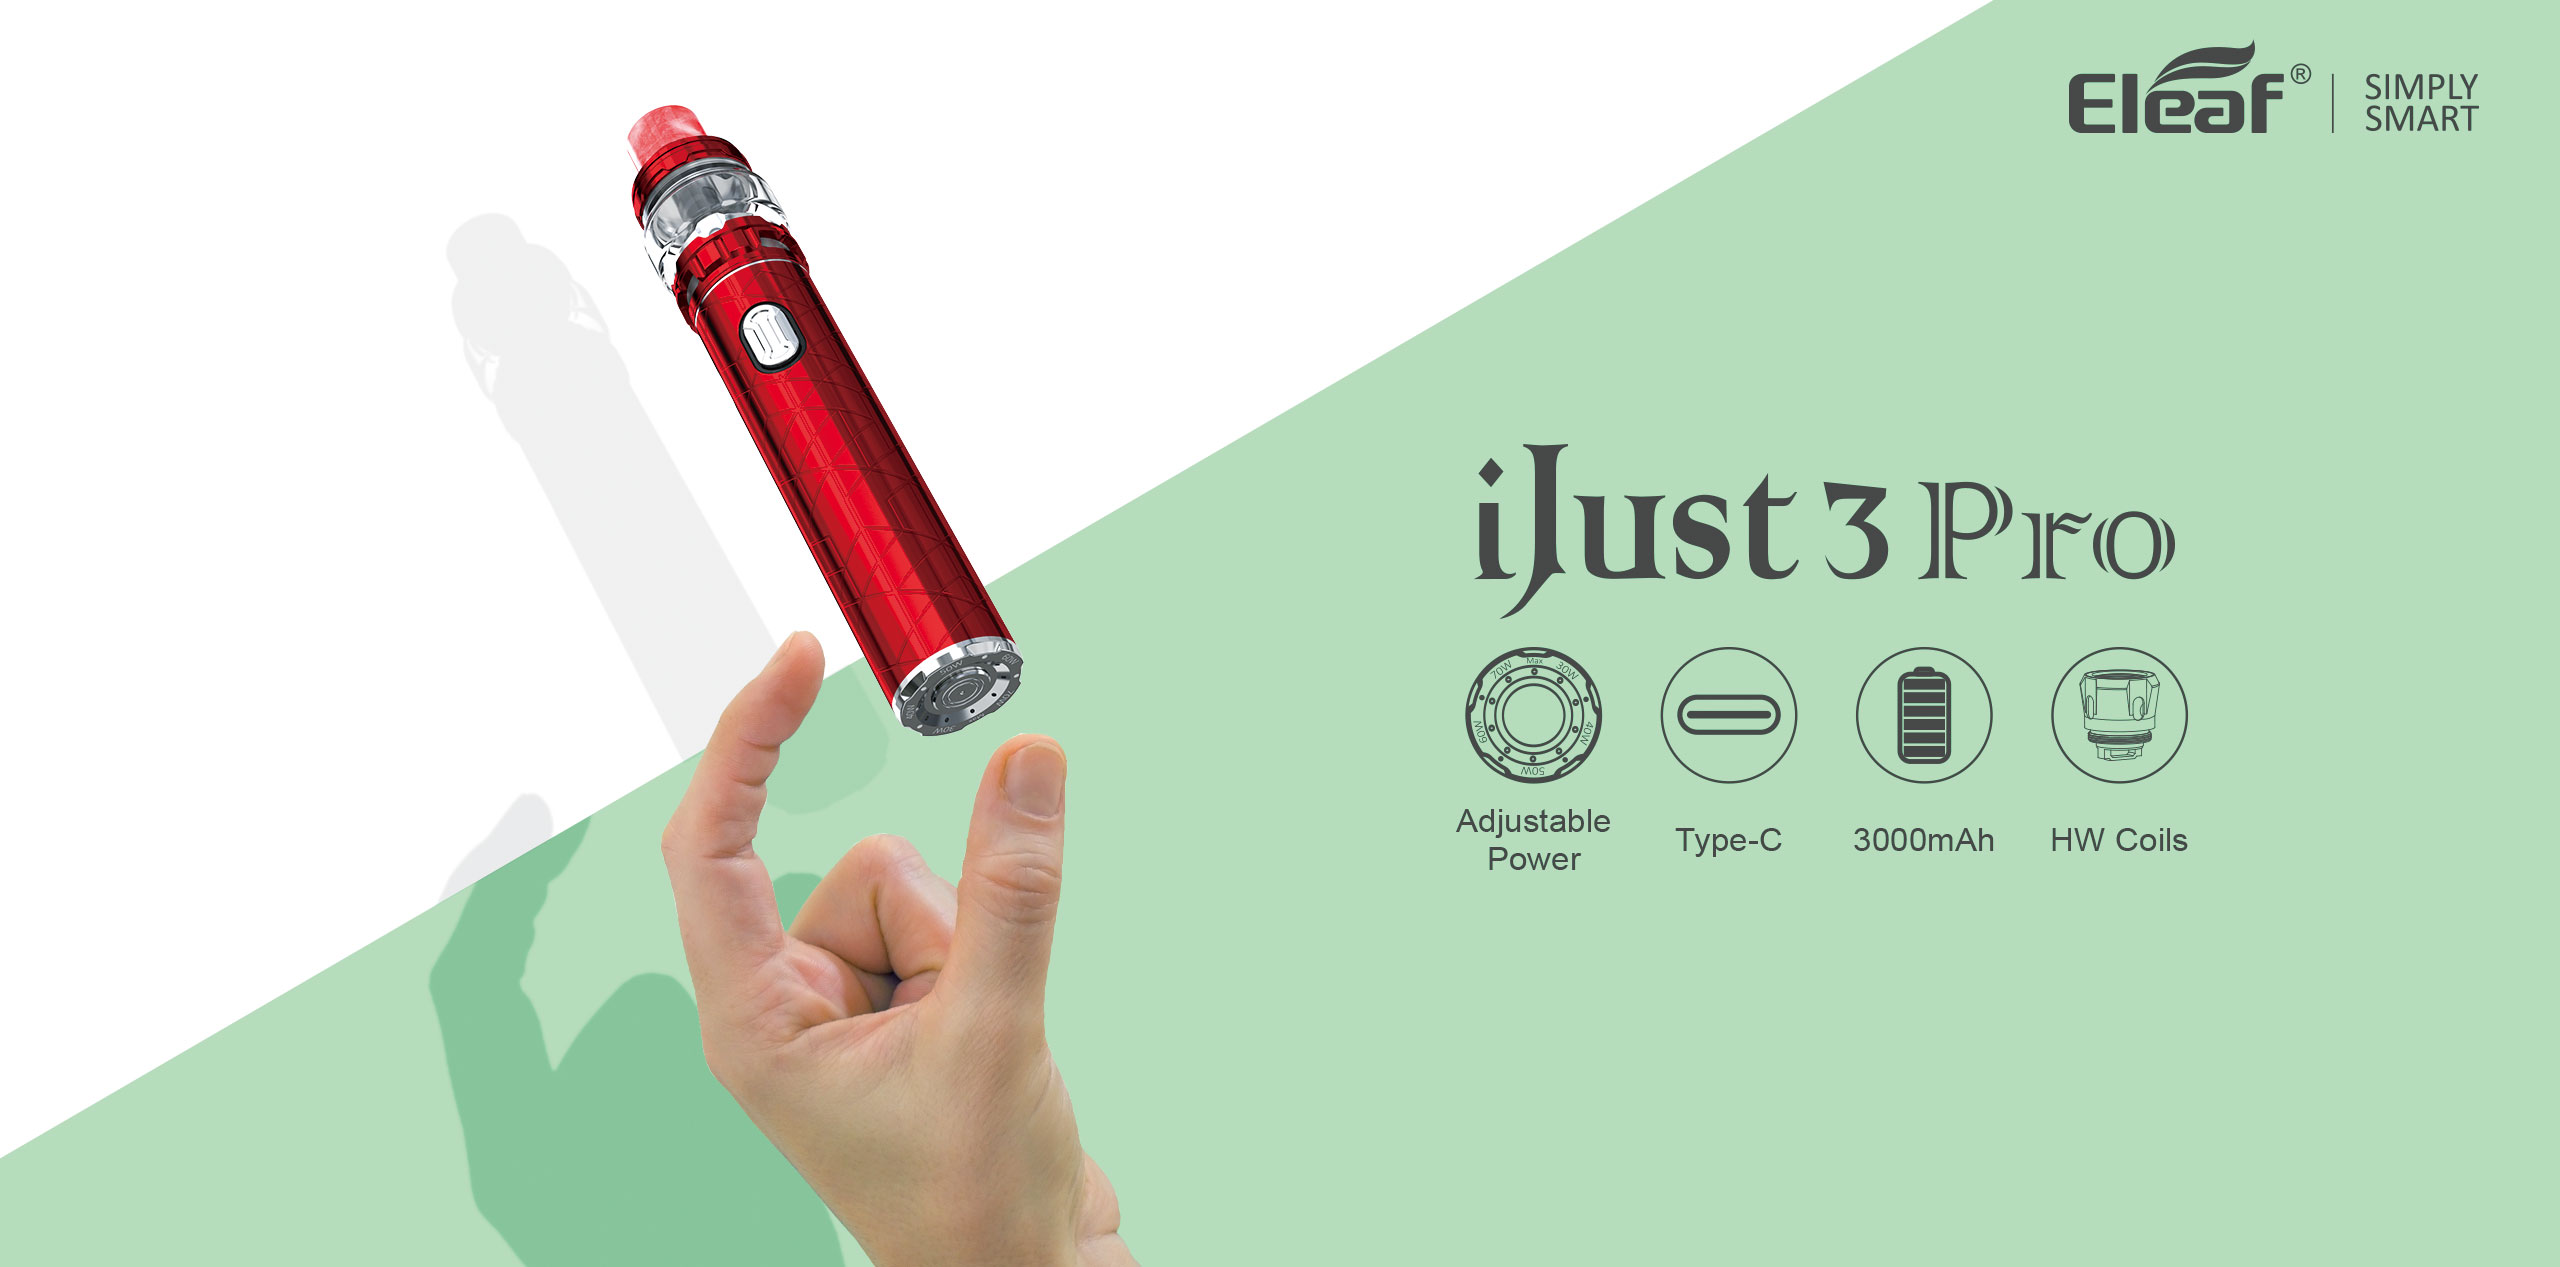 Eleaf iJust 3 Pro Kit with Ello Duro Tank Features